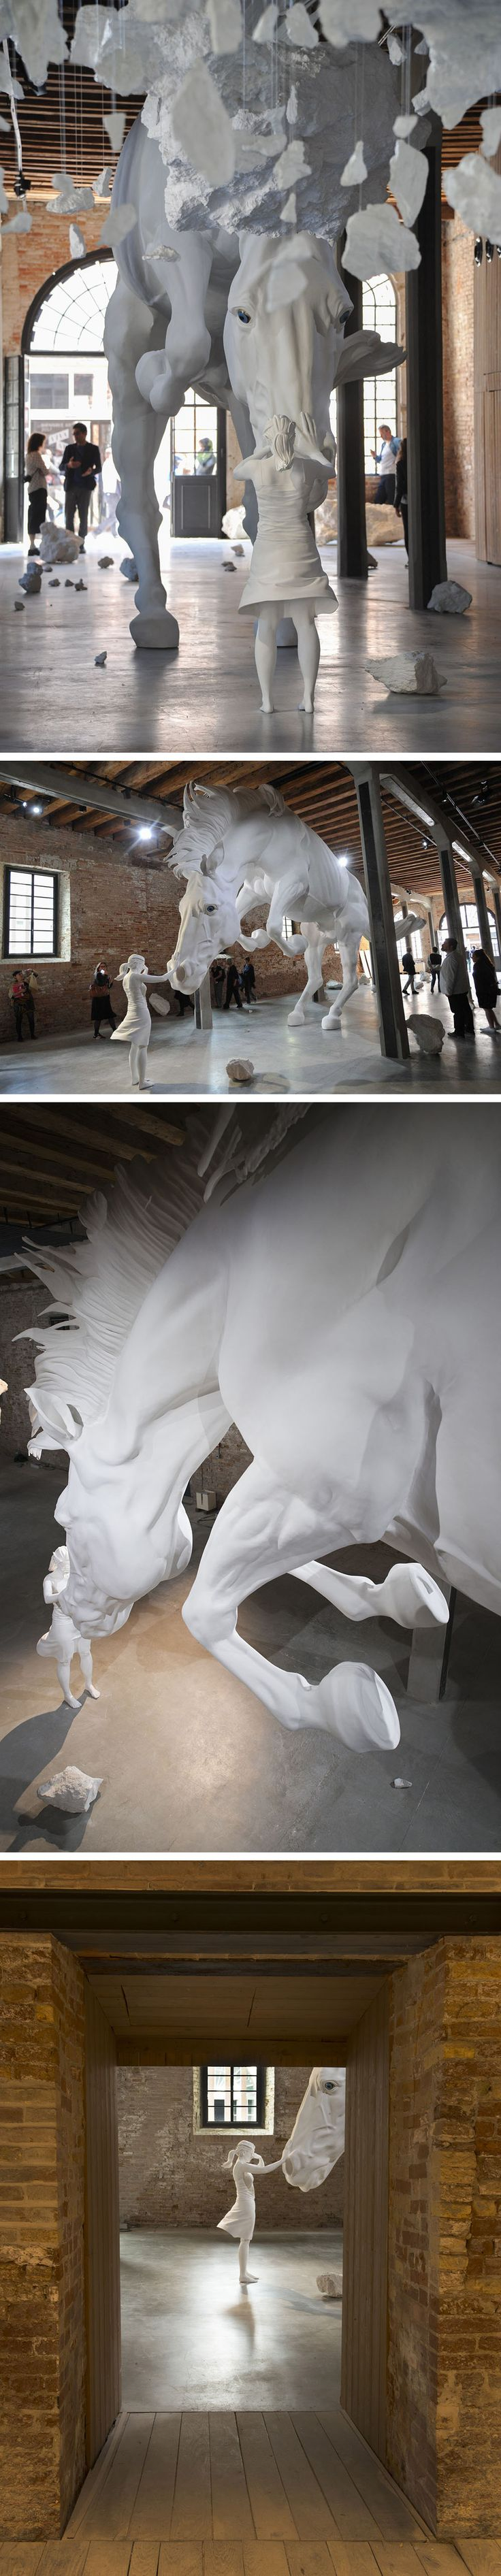 A Girl Encounters a Giant White Horse Frozen in Mid-Air Within the Venice Biennale's Argentinian Pavilion